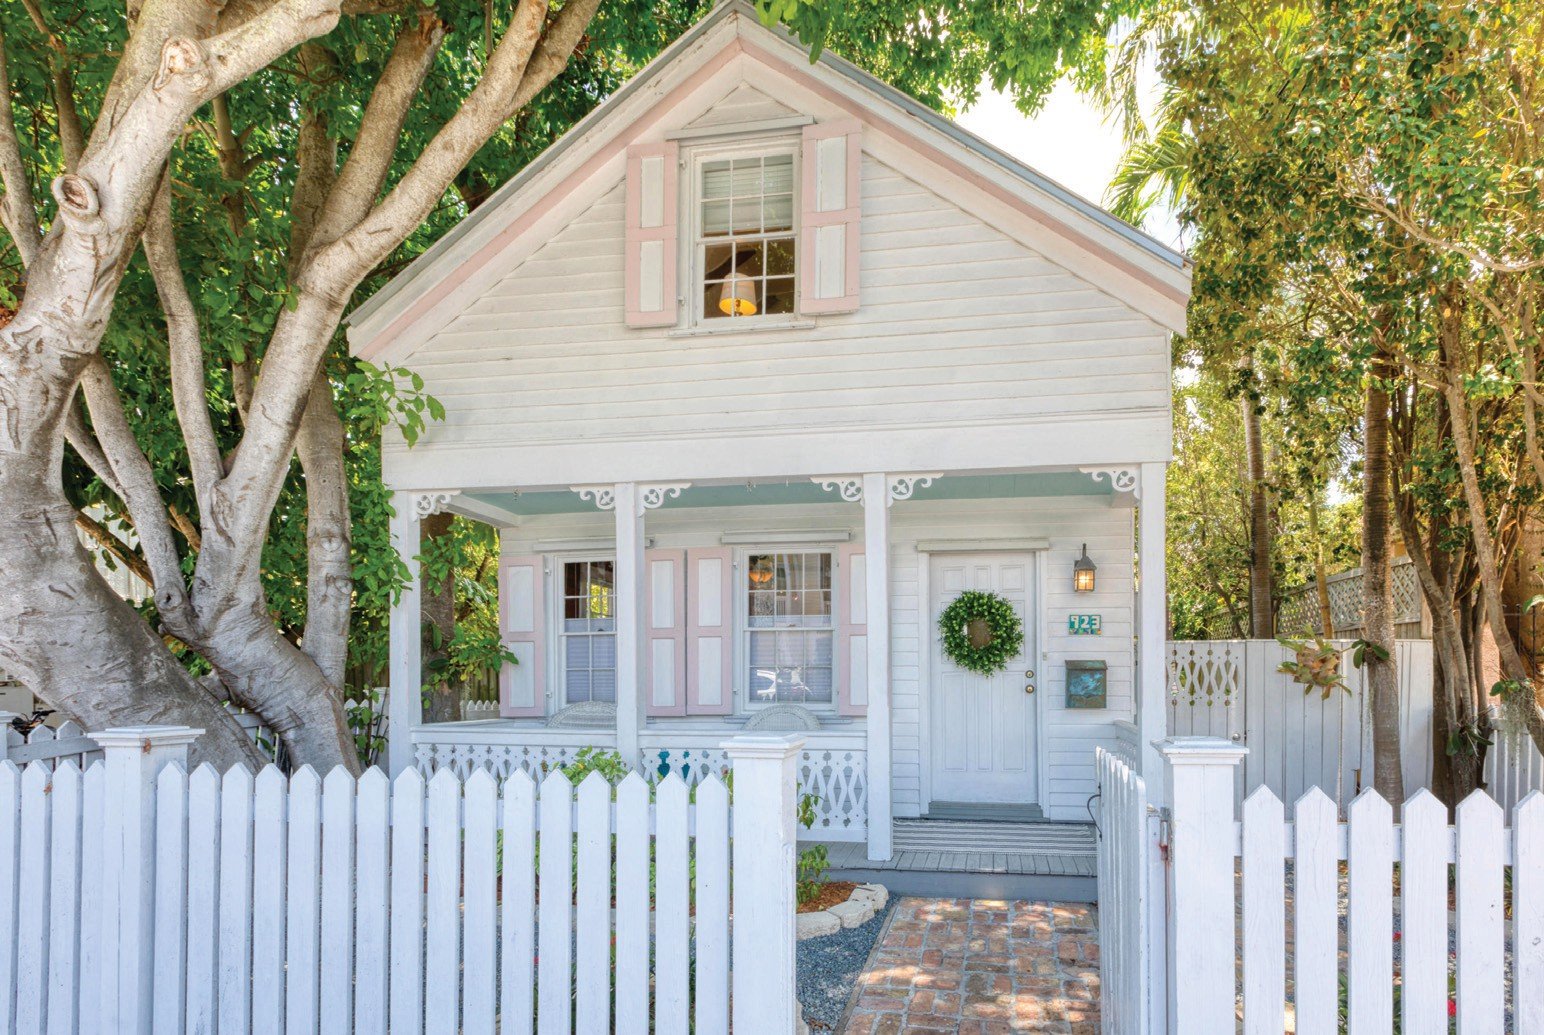 Miraculous Charming Old Town Home Key West Florida Weekly Key West News Interior Design Ideas Gresisoteloinfo